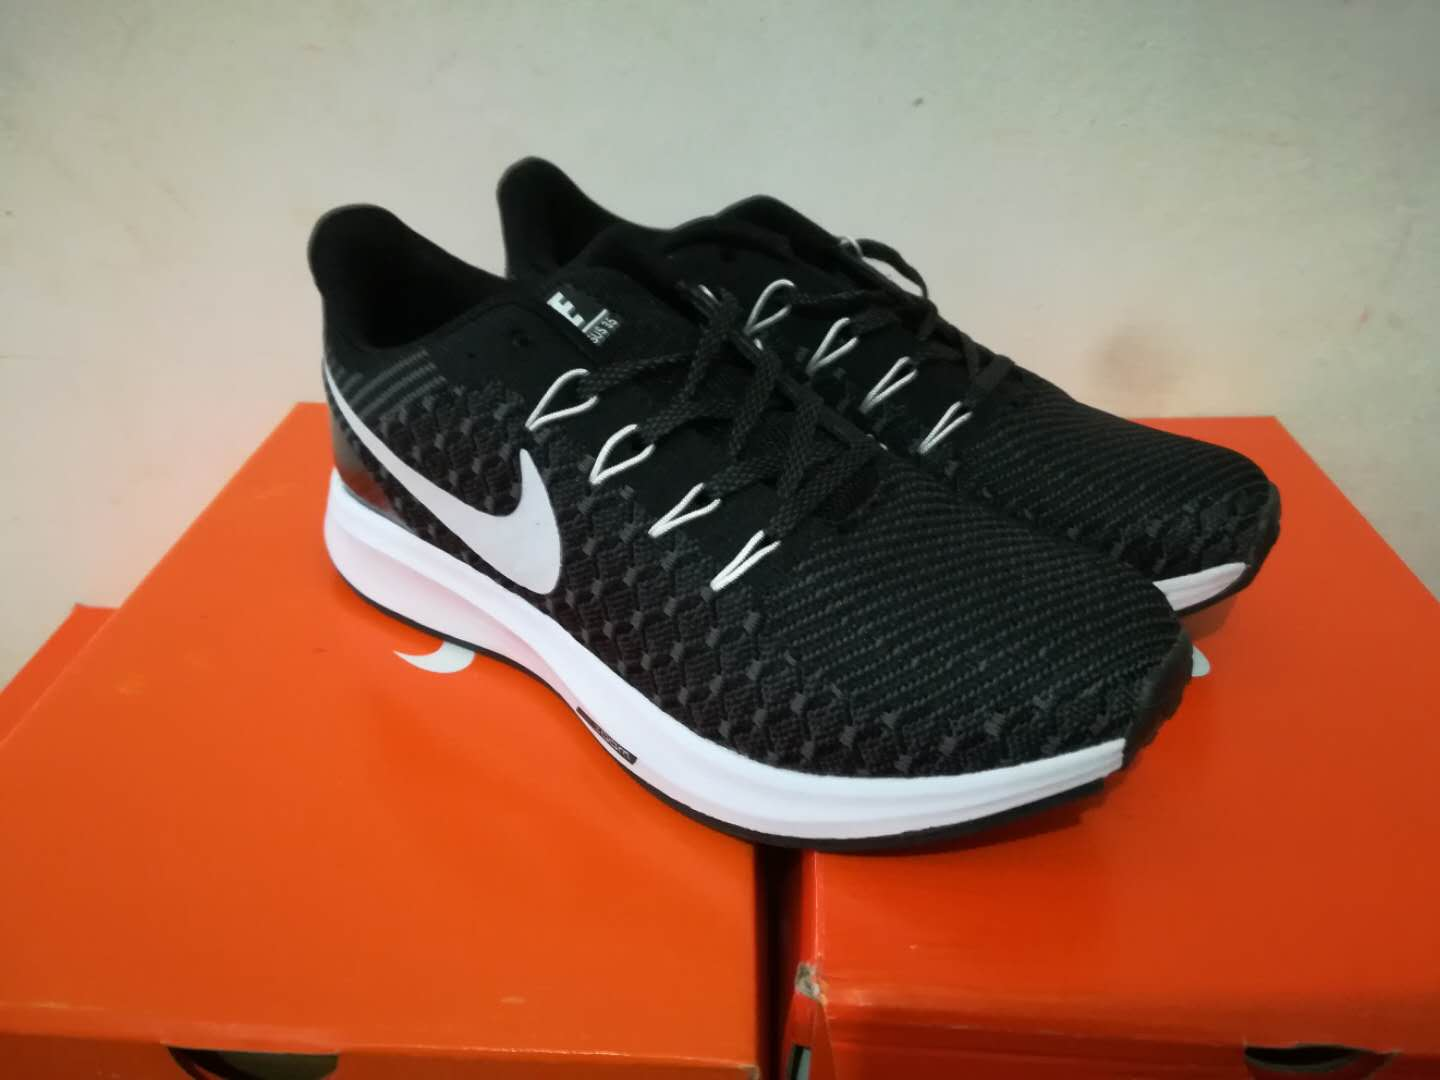 Nike Flyknit Lunar 2 iD Black White Running Shoes